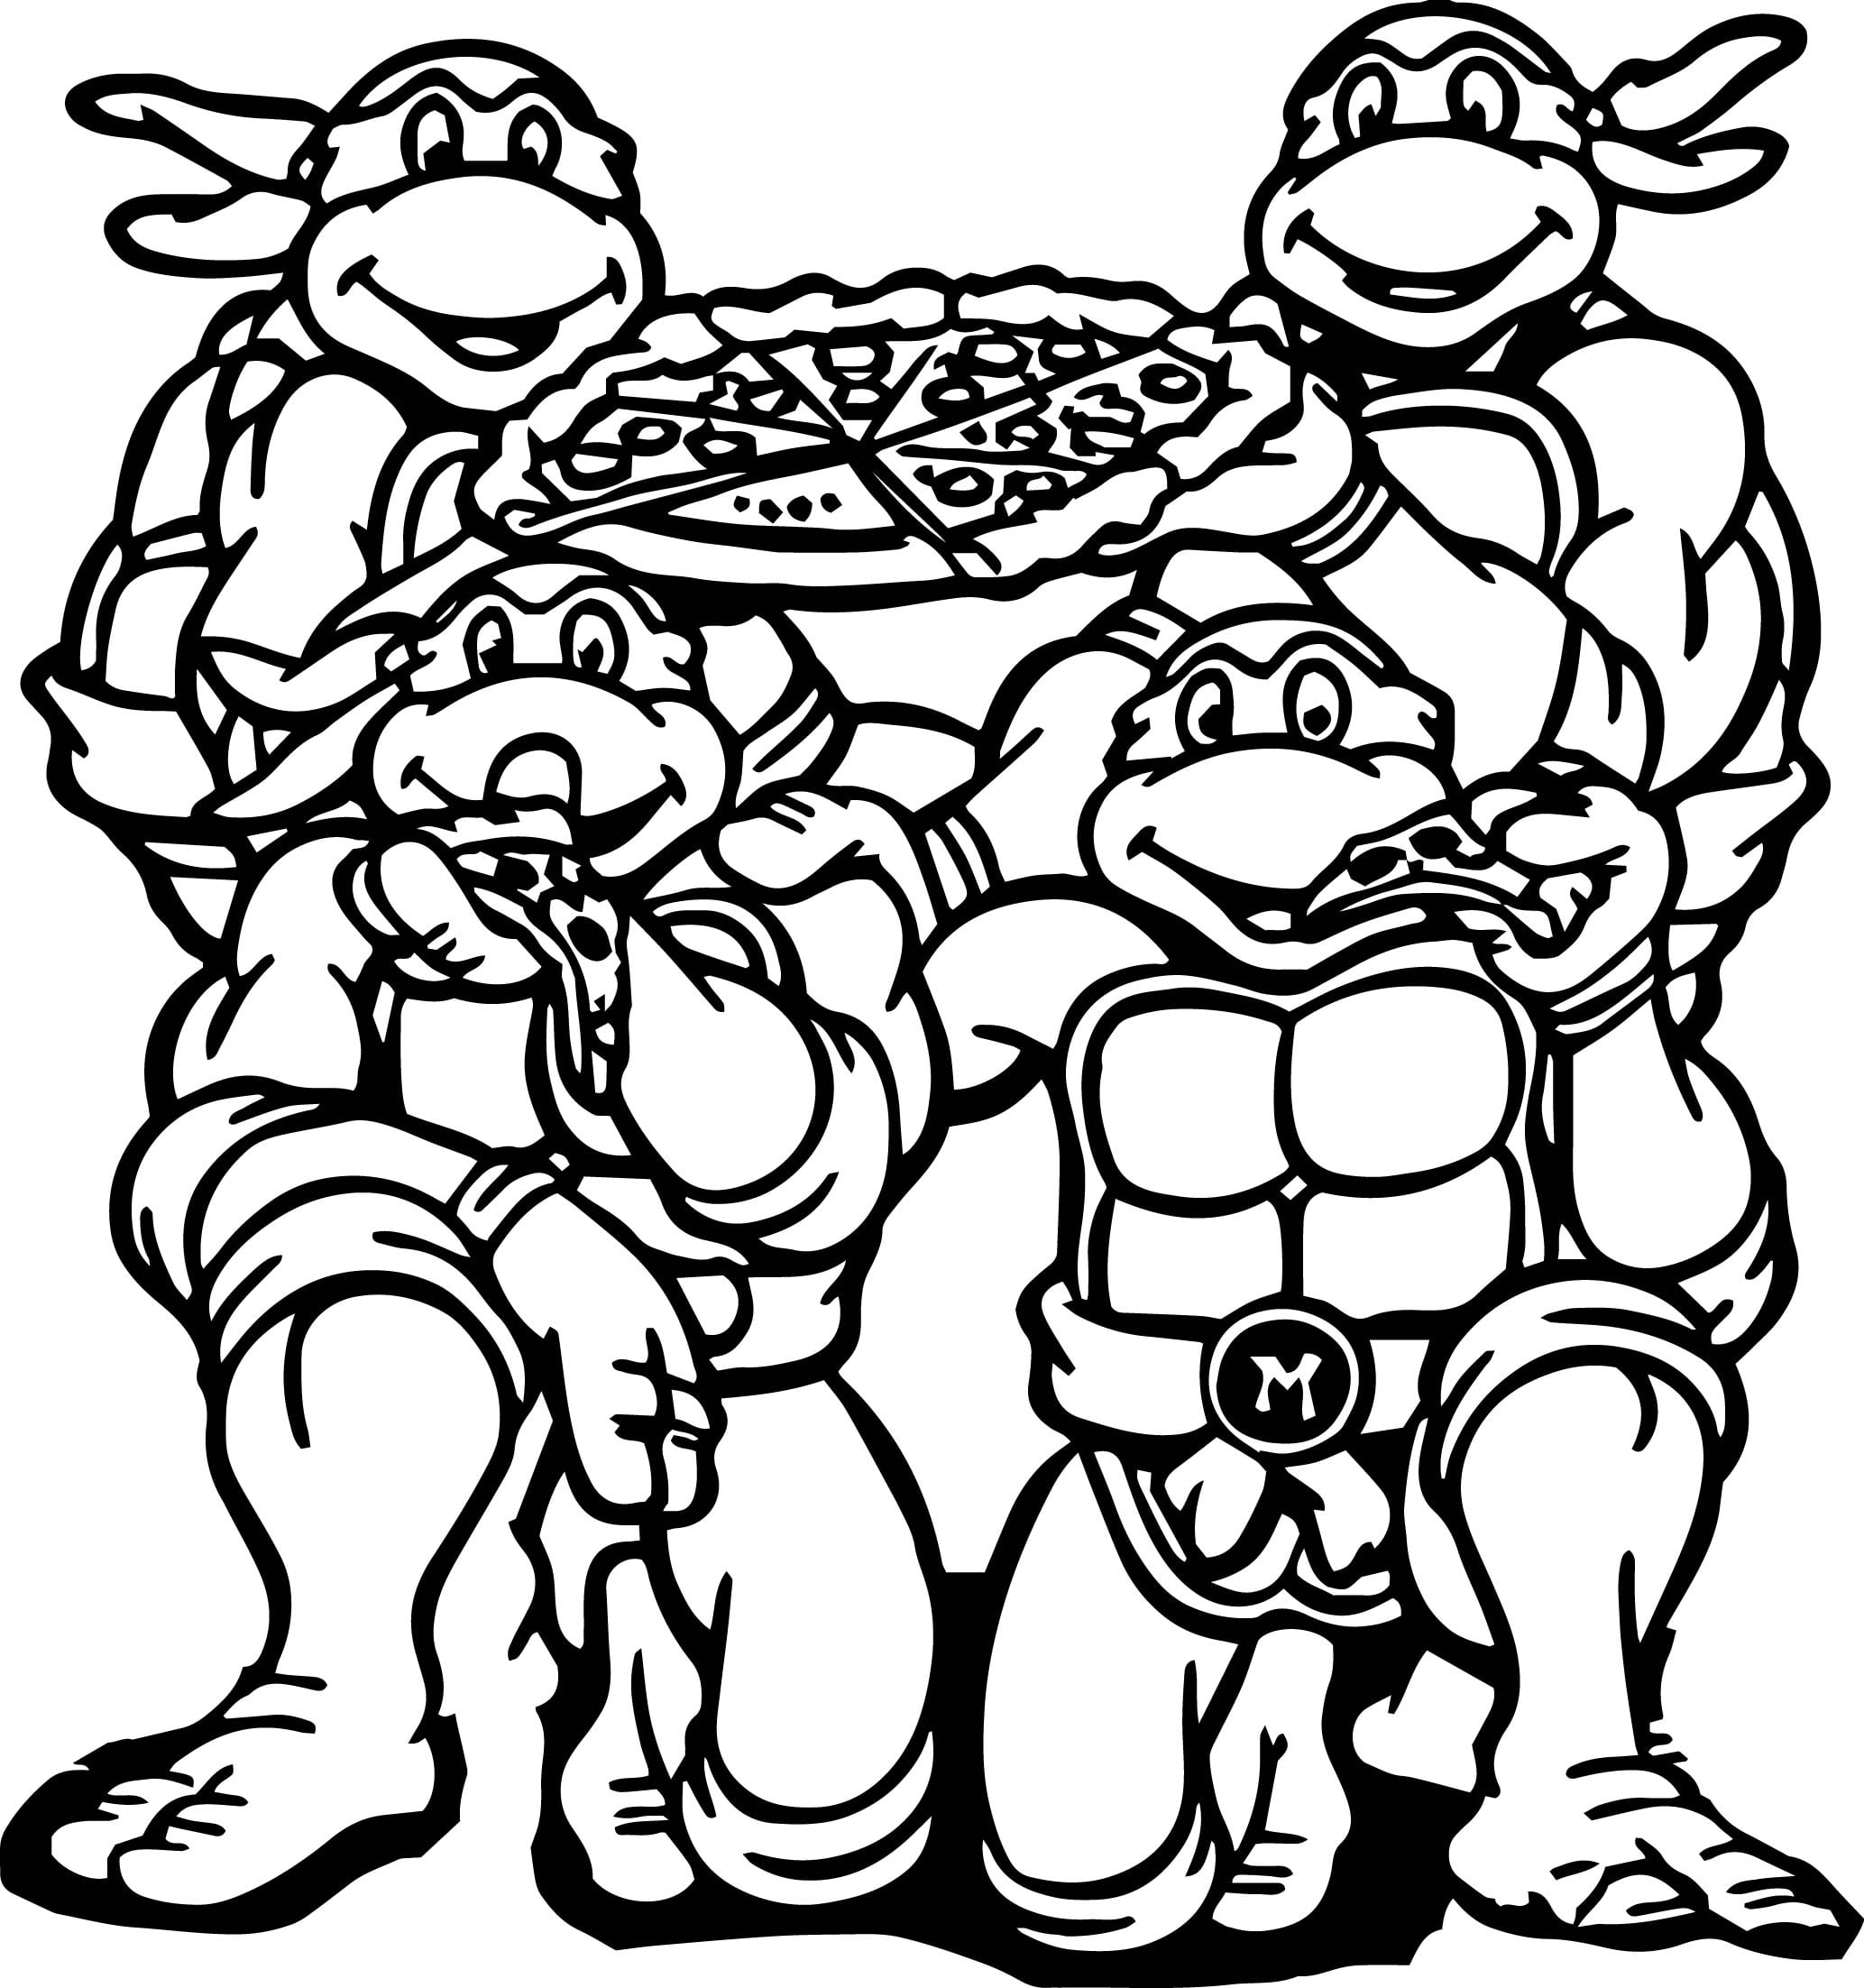 Free Ninja Turtle Coloring Pages - NEO Coloring